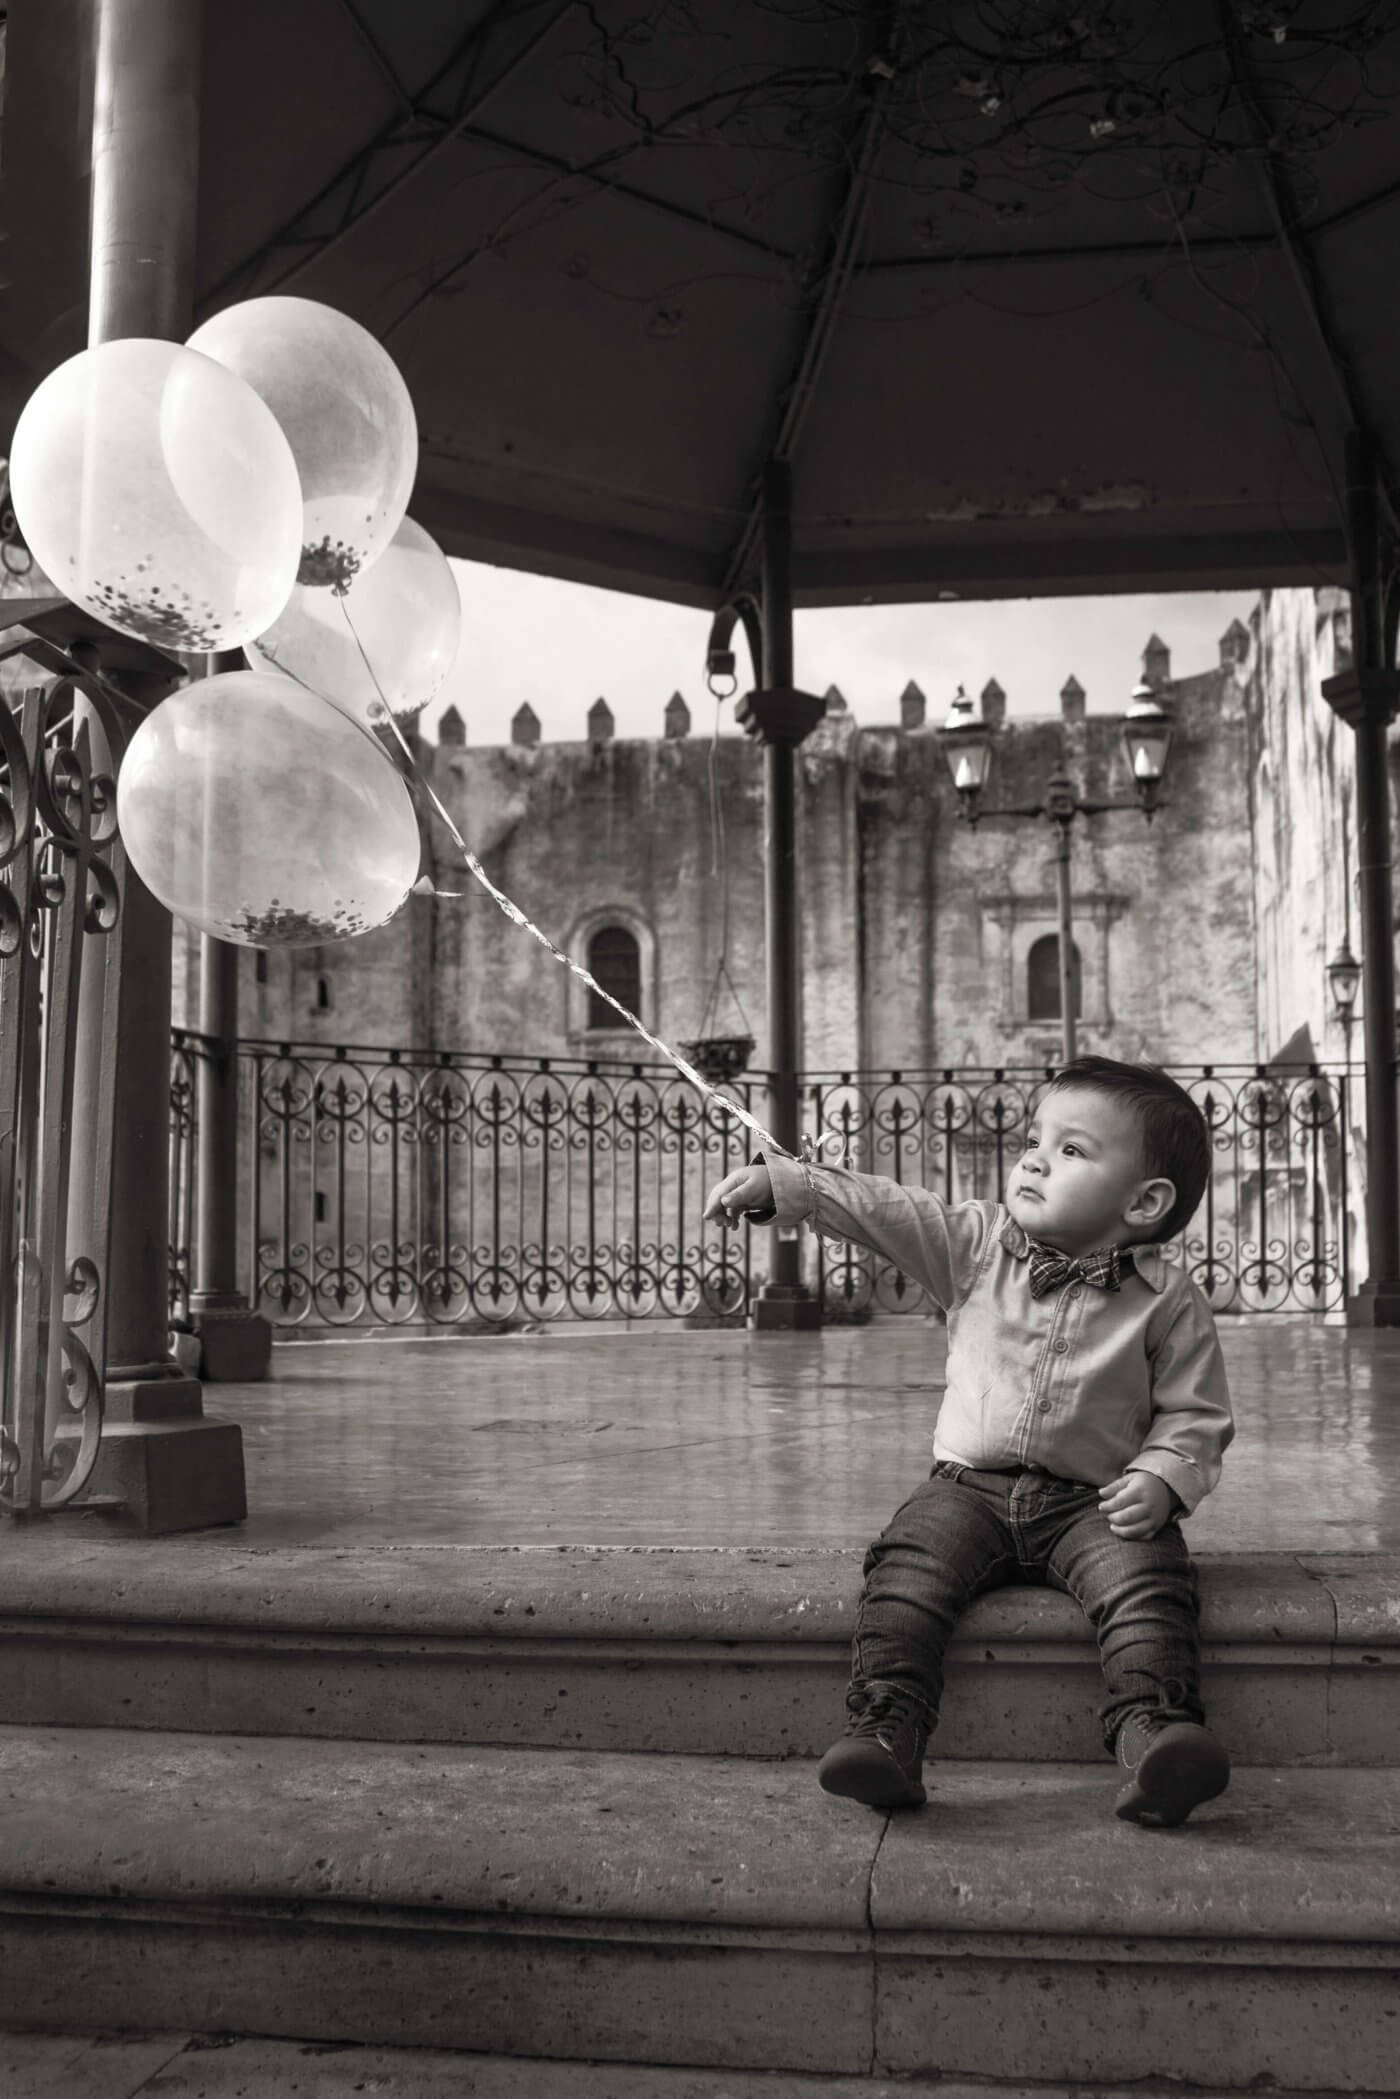 Baby with Balloons | The Mustcard